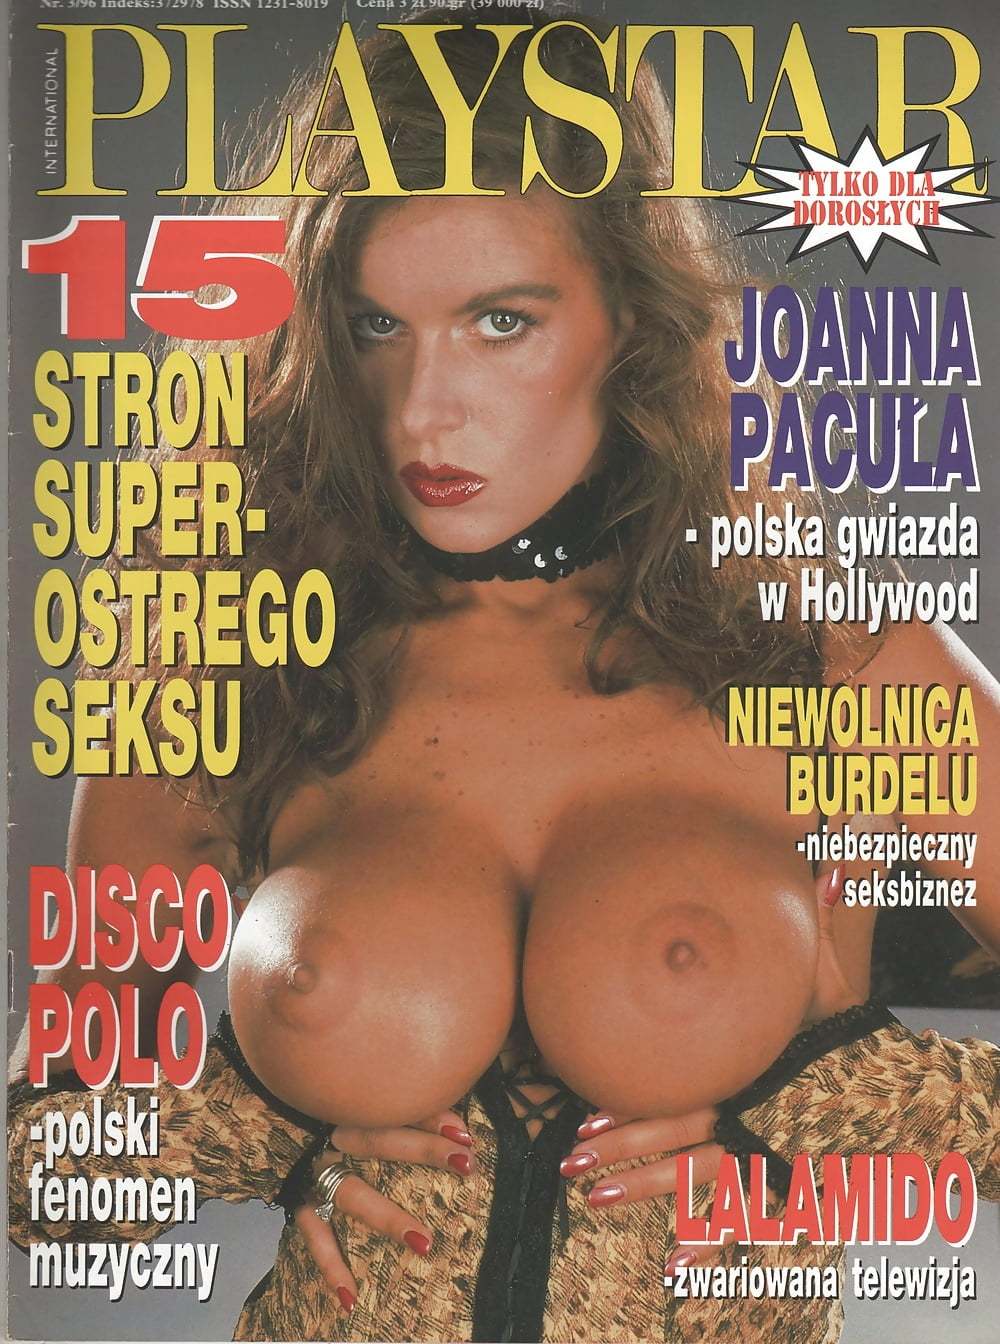 Adults porn magazine, positions sex girl